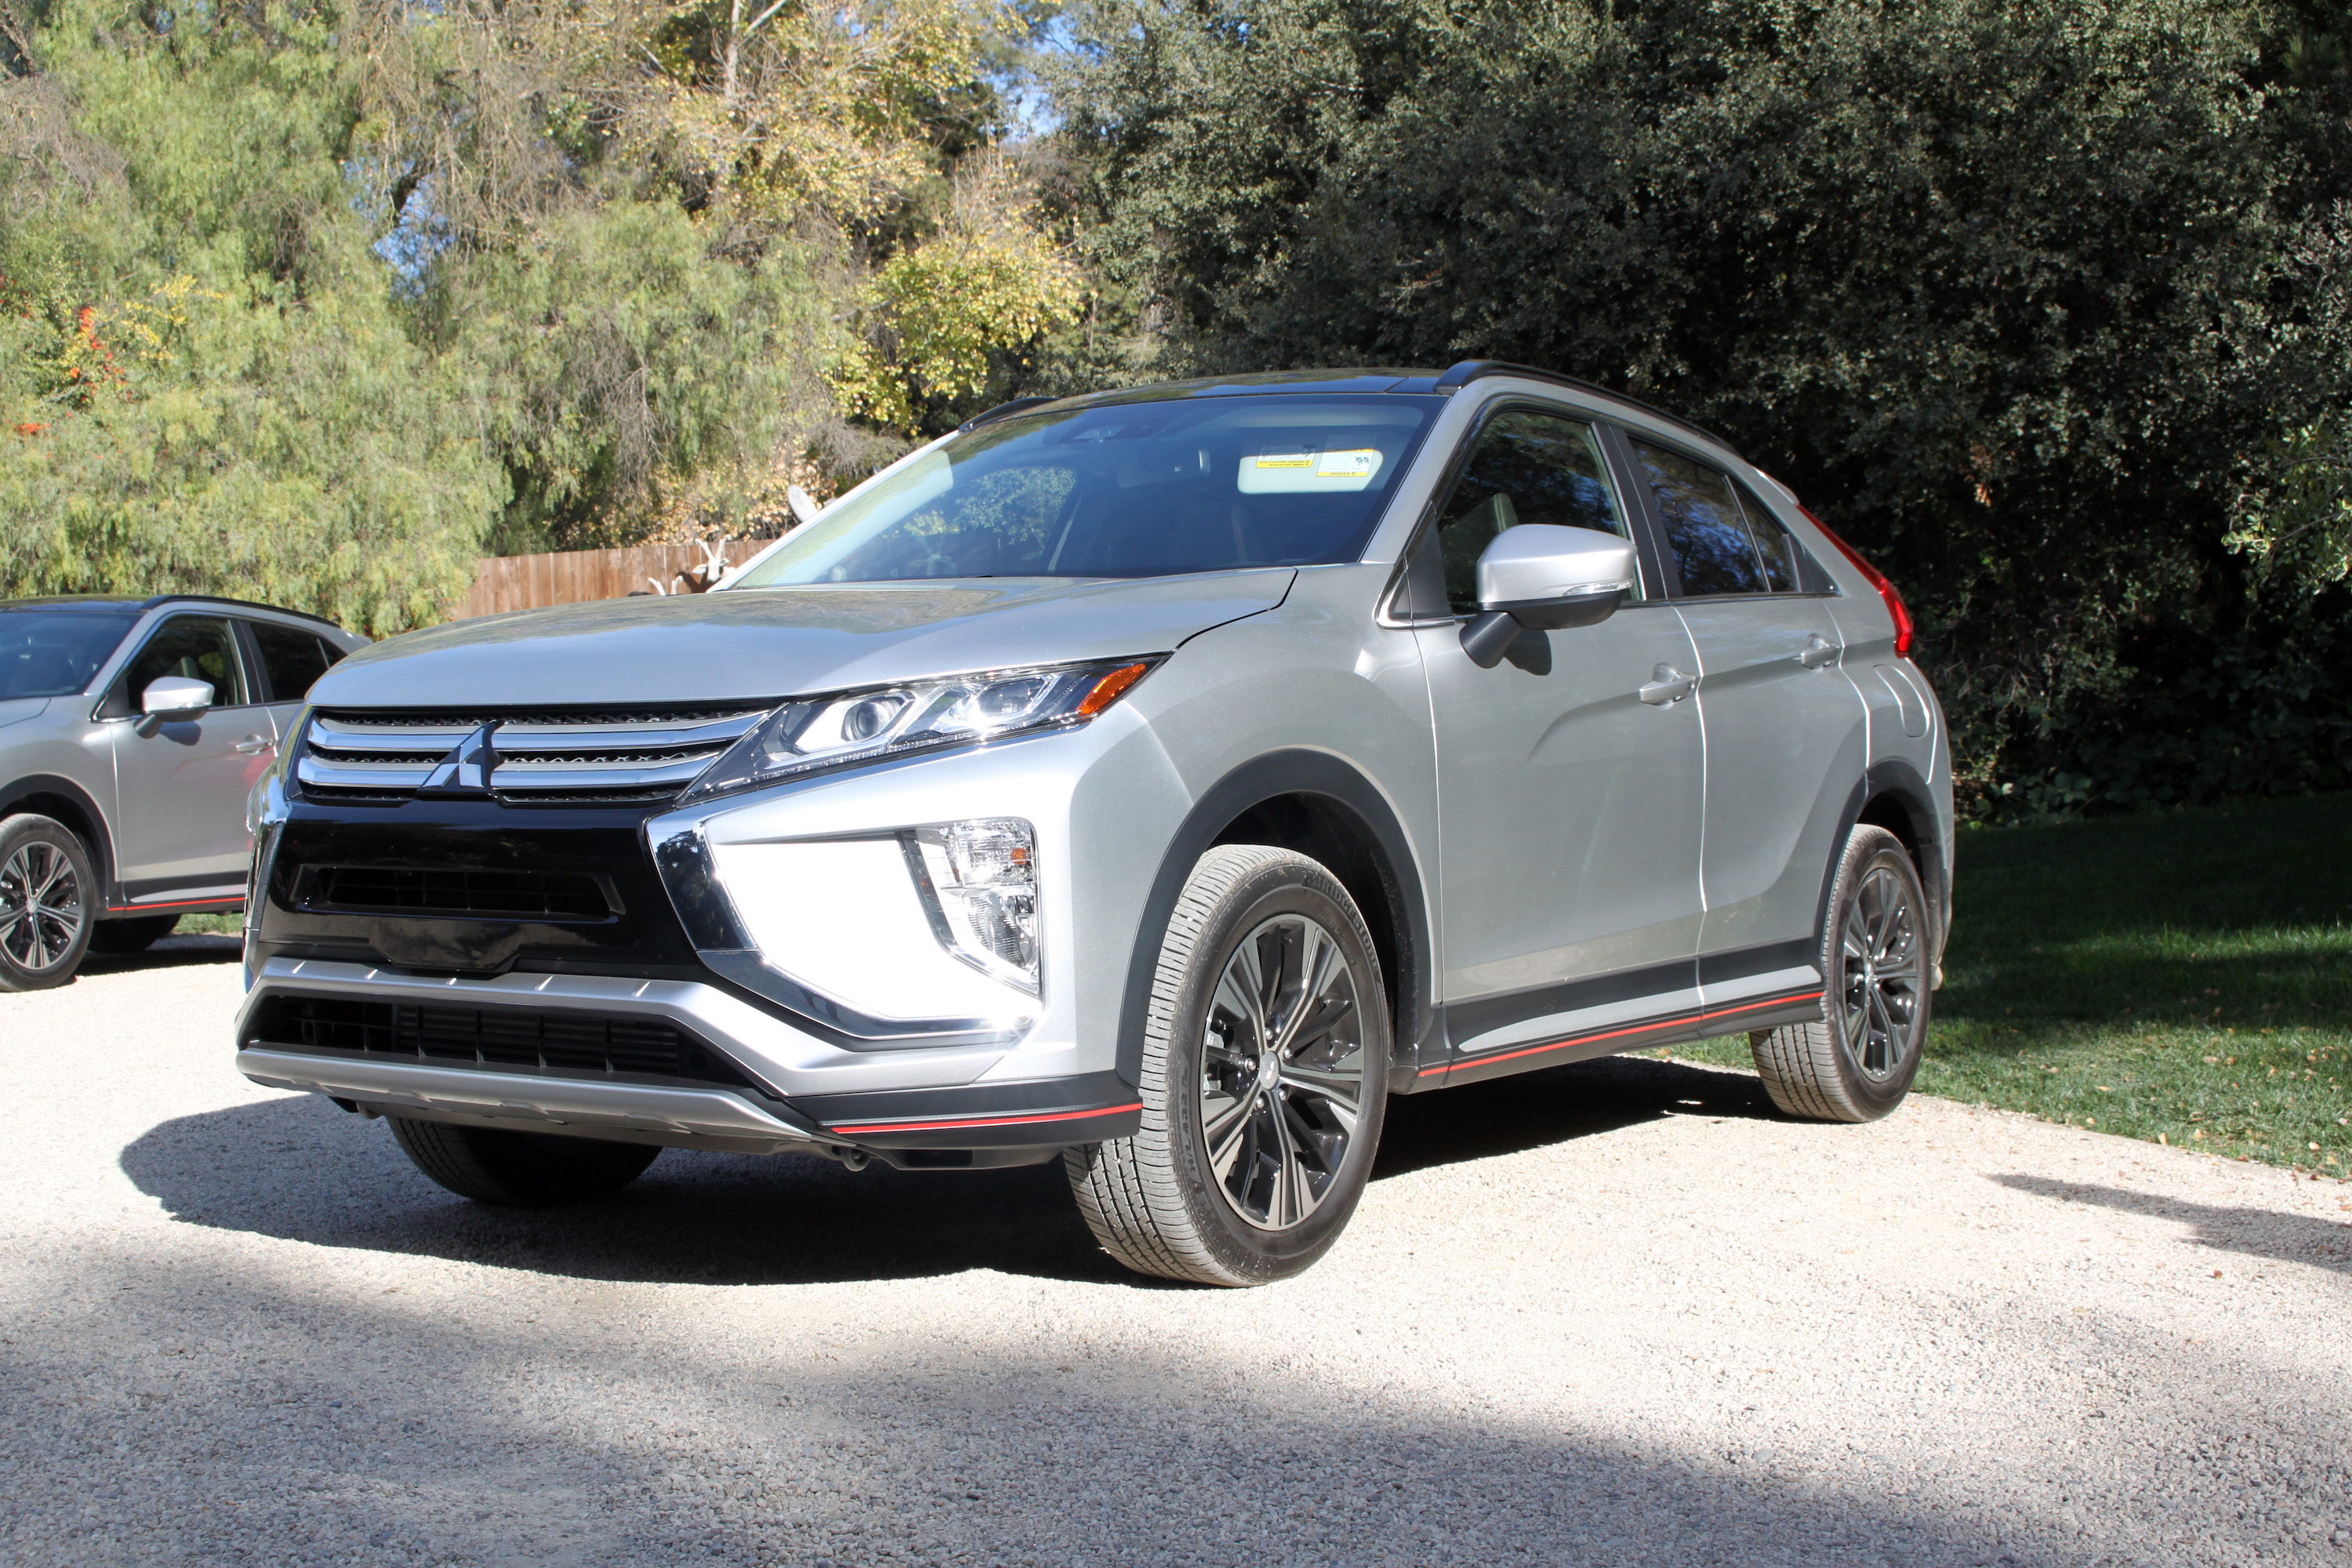 2018 Mitsubishi Eclipse Cross First Drive And Review